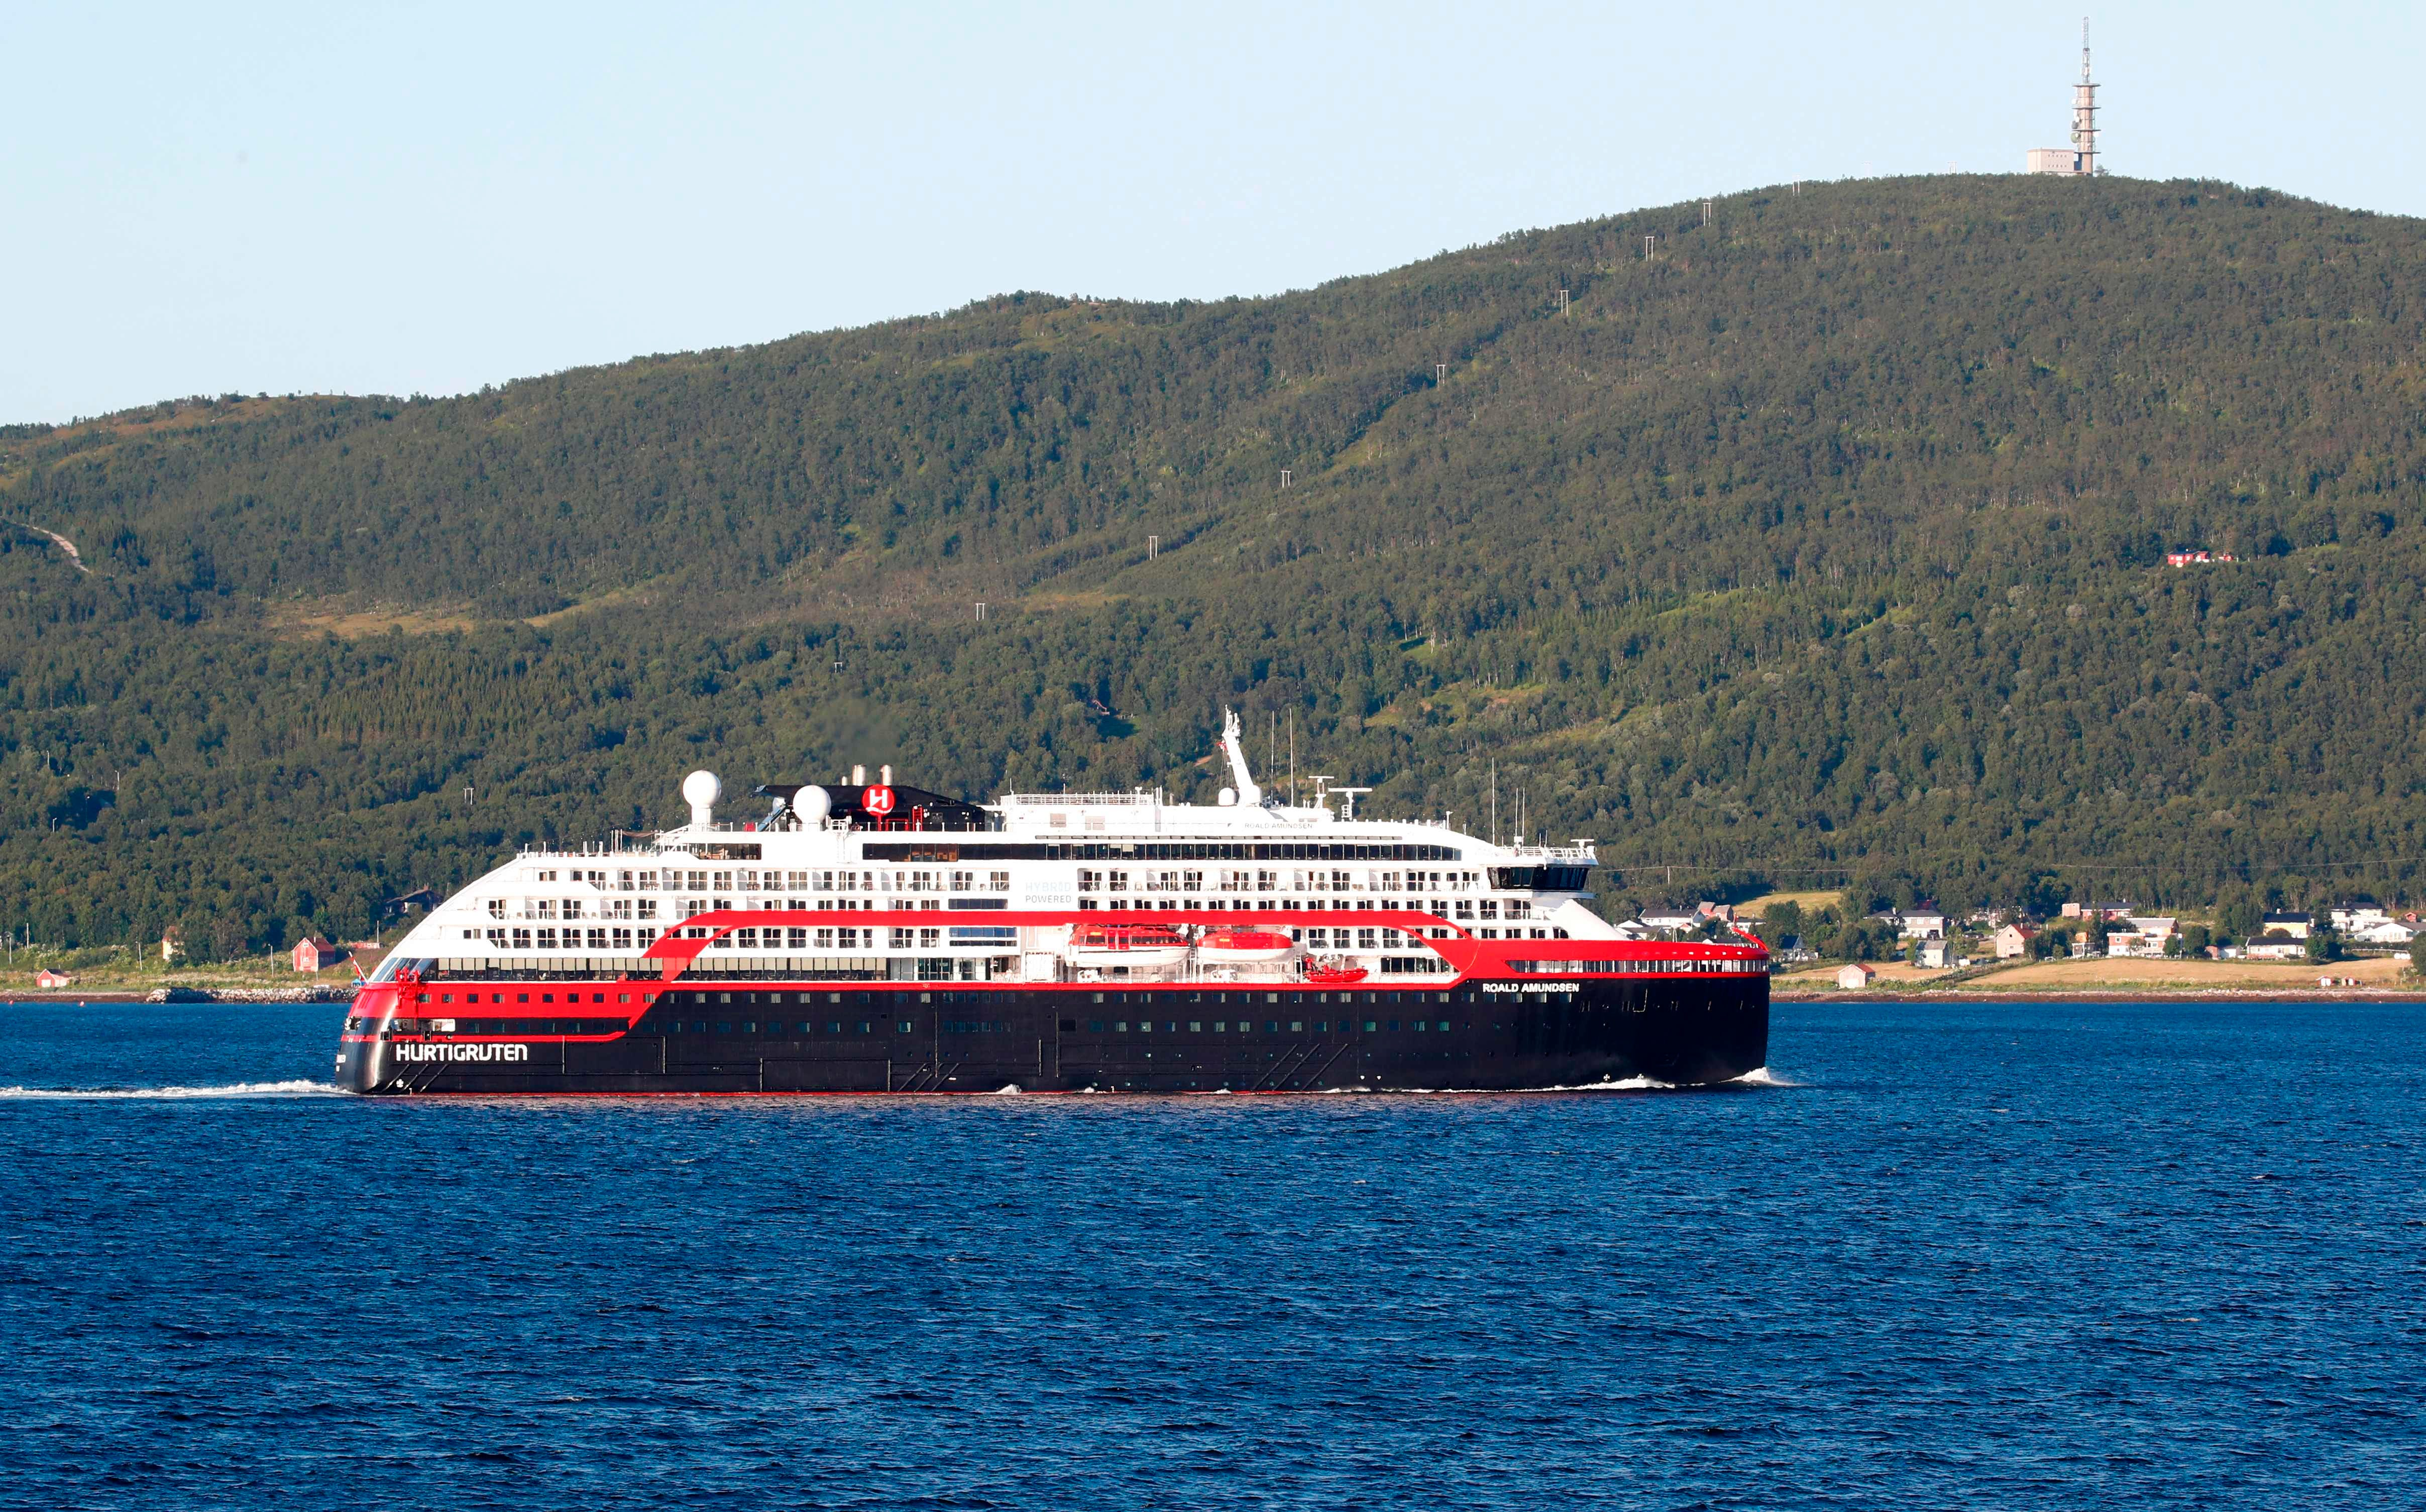 There has been a failure : 40 passengers, crew infected with COVID-19 in Hurtigruten outbreak